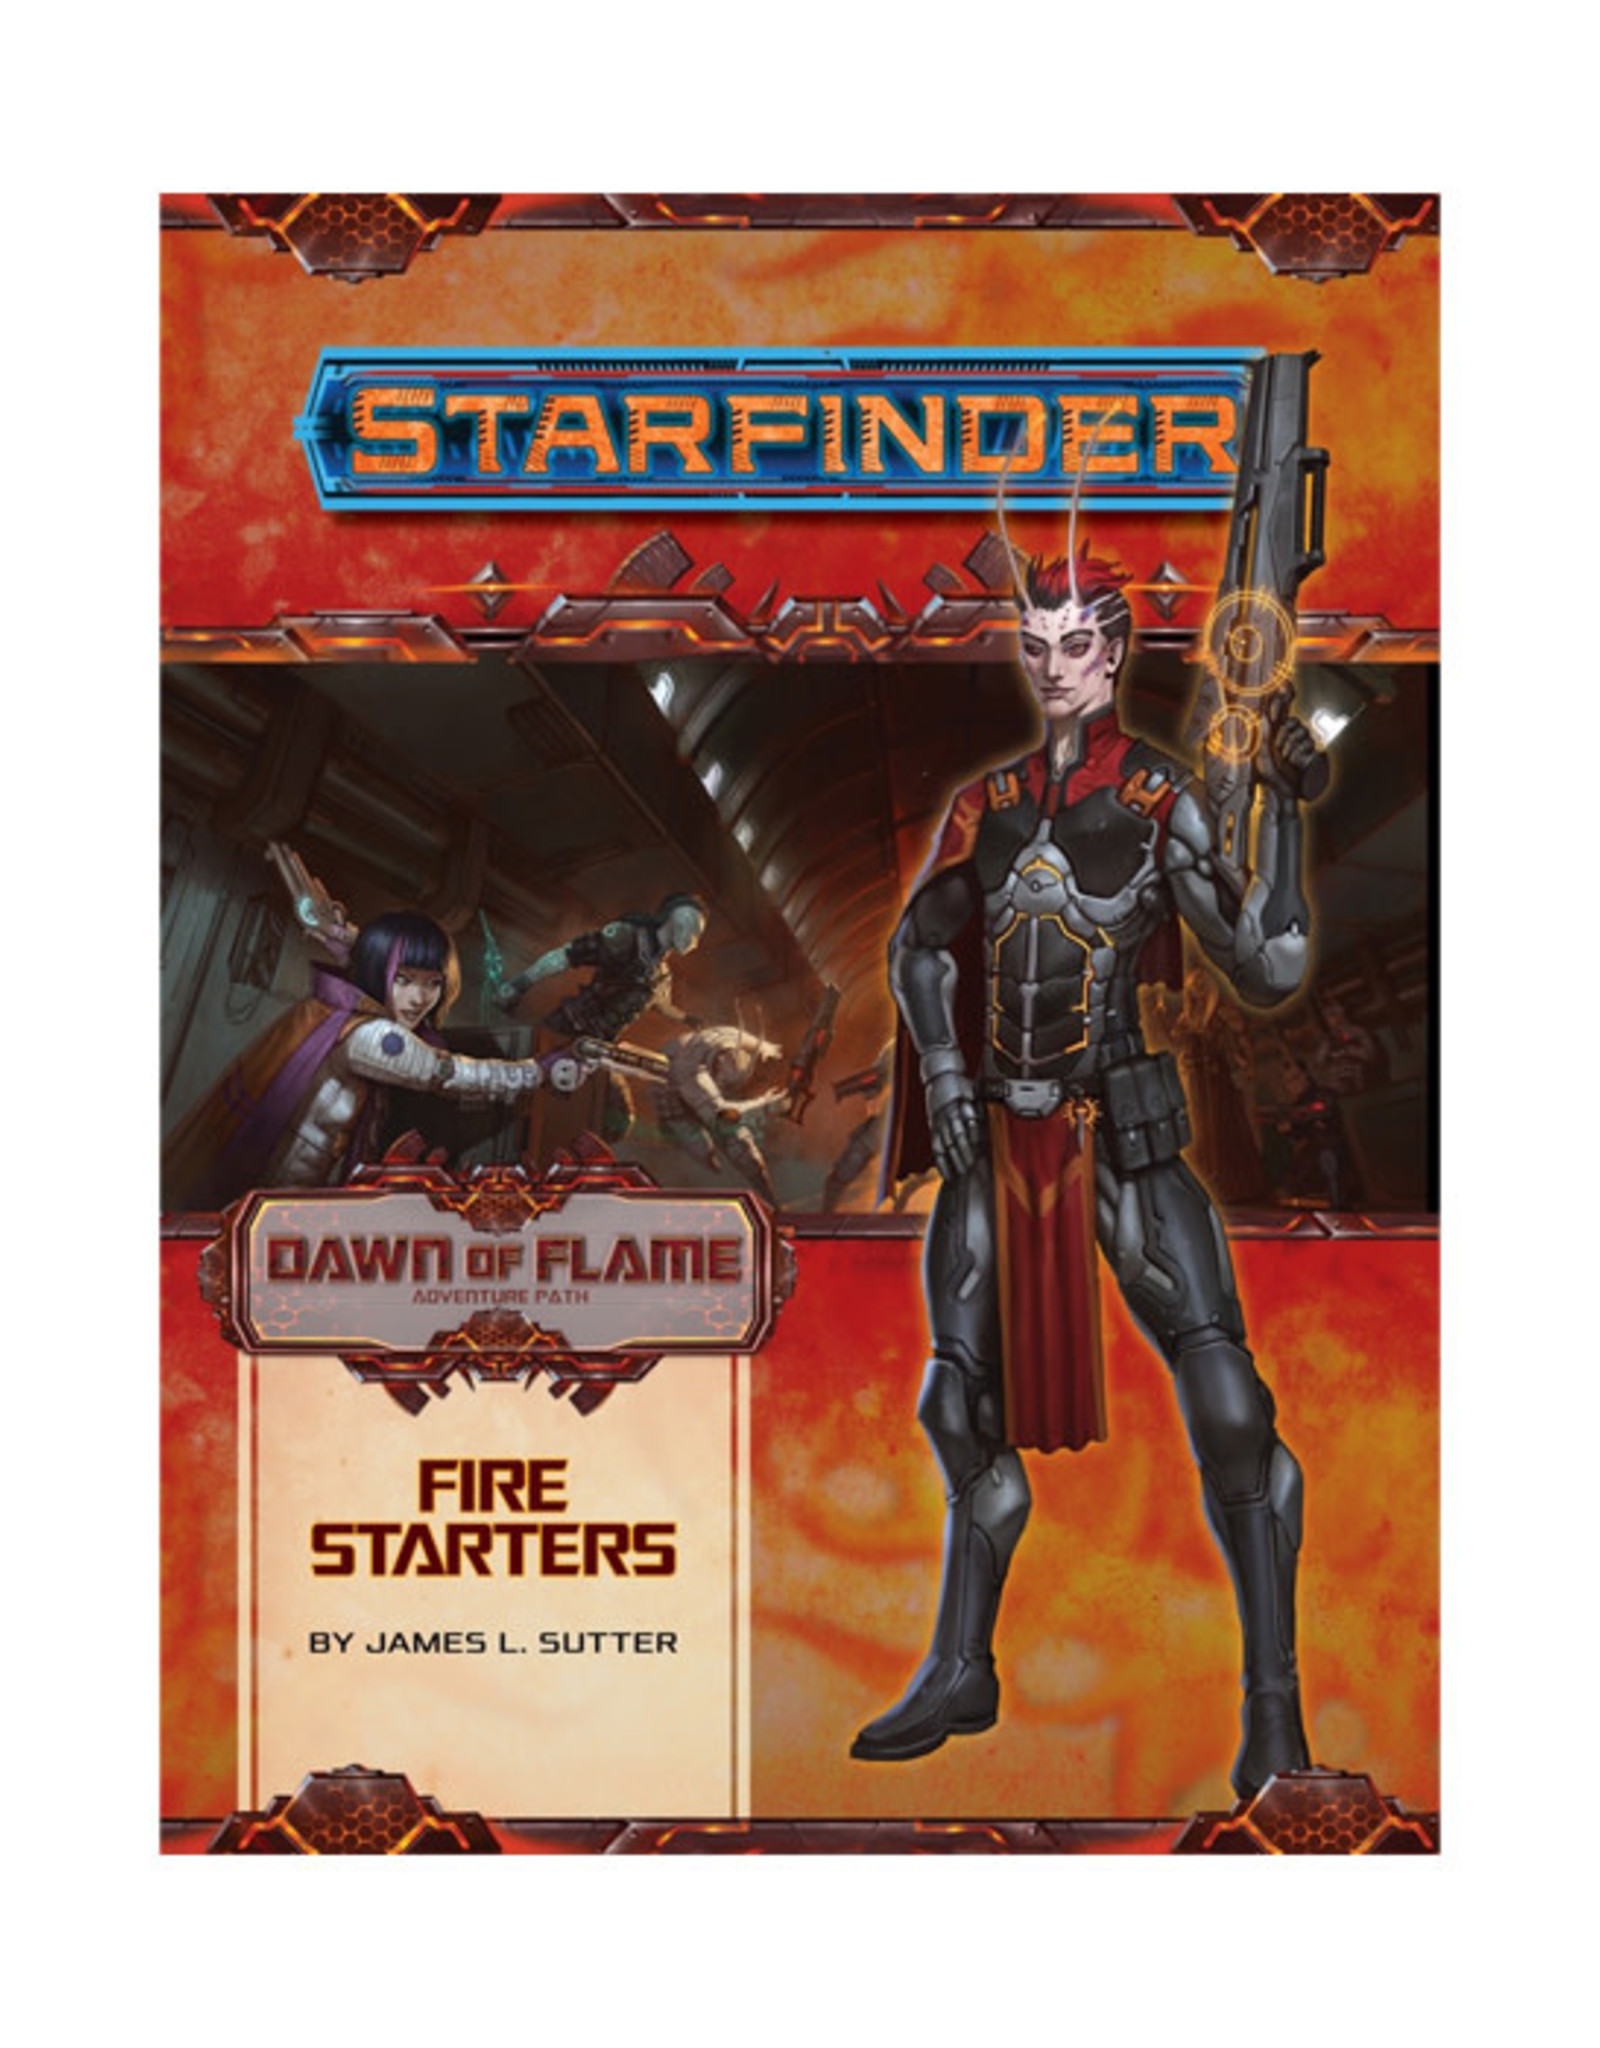 Starfinder Starfinder: Adventure Path - Dawn of Flame - Fire Starters